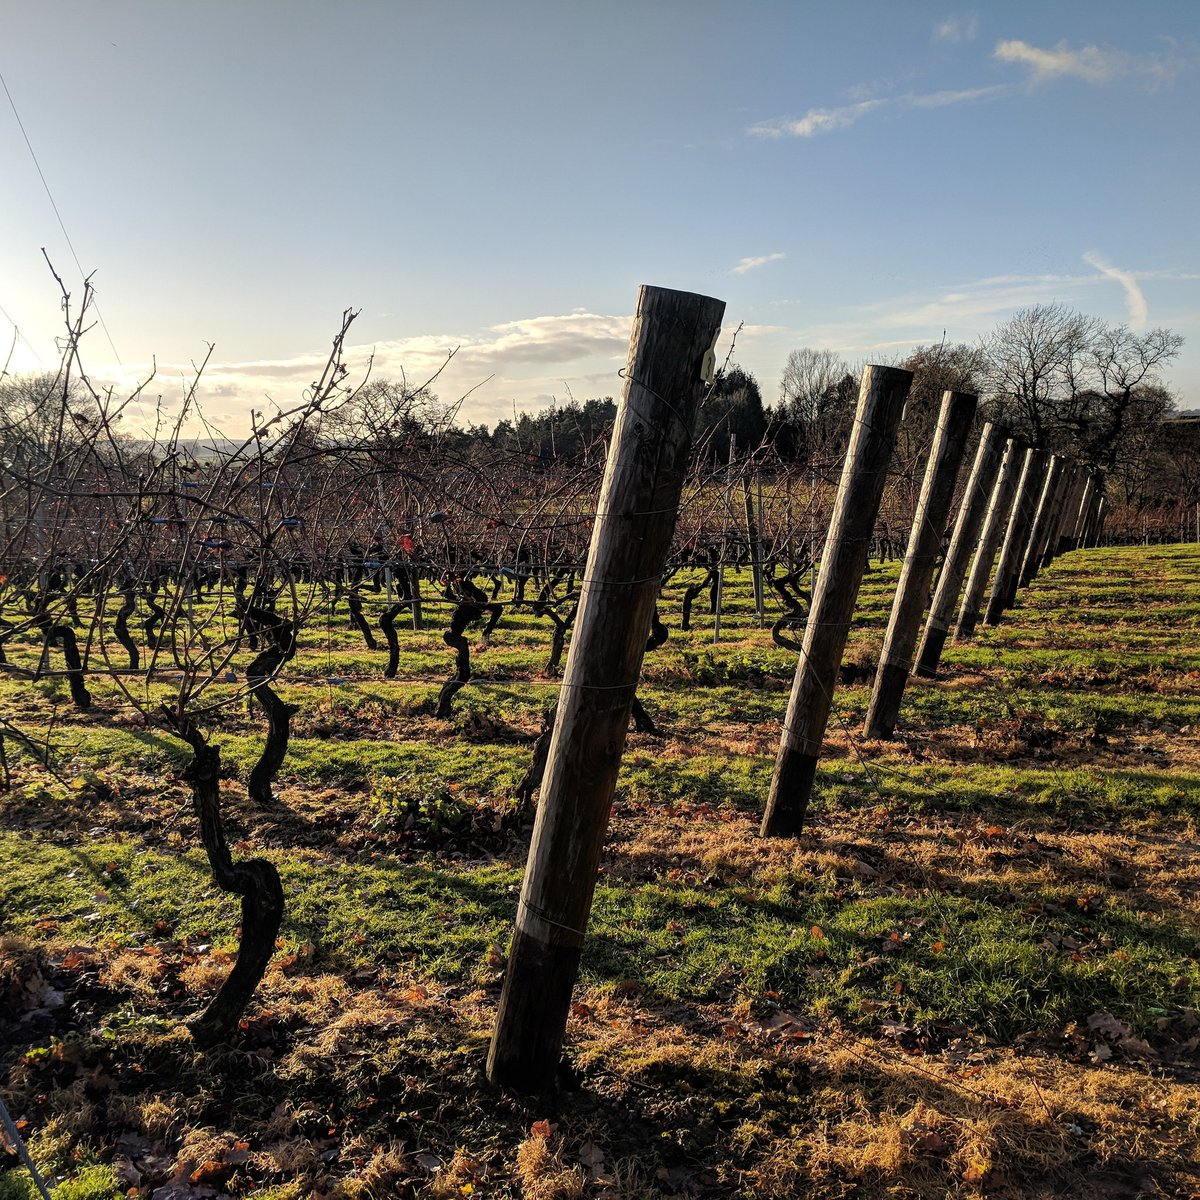 Beautiful day out at Chapel Down Winery in Kent, UK. Who has tried English wine before? Any thoughts? #wine #ilovewine #englishwine #kent #bacchus #sparklingwines #whitewine #ddk <br>http://pic.twitter.com/nsivKkDjdC